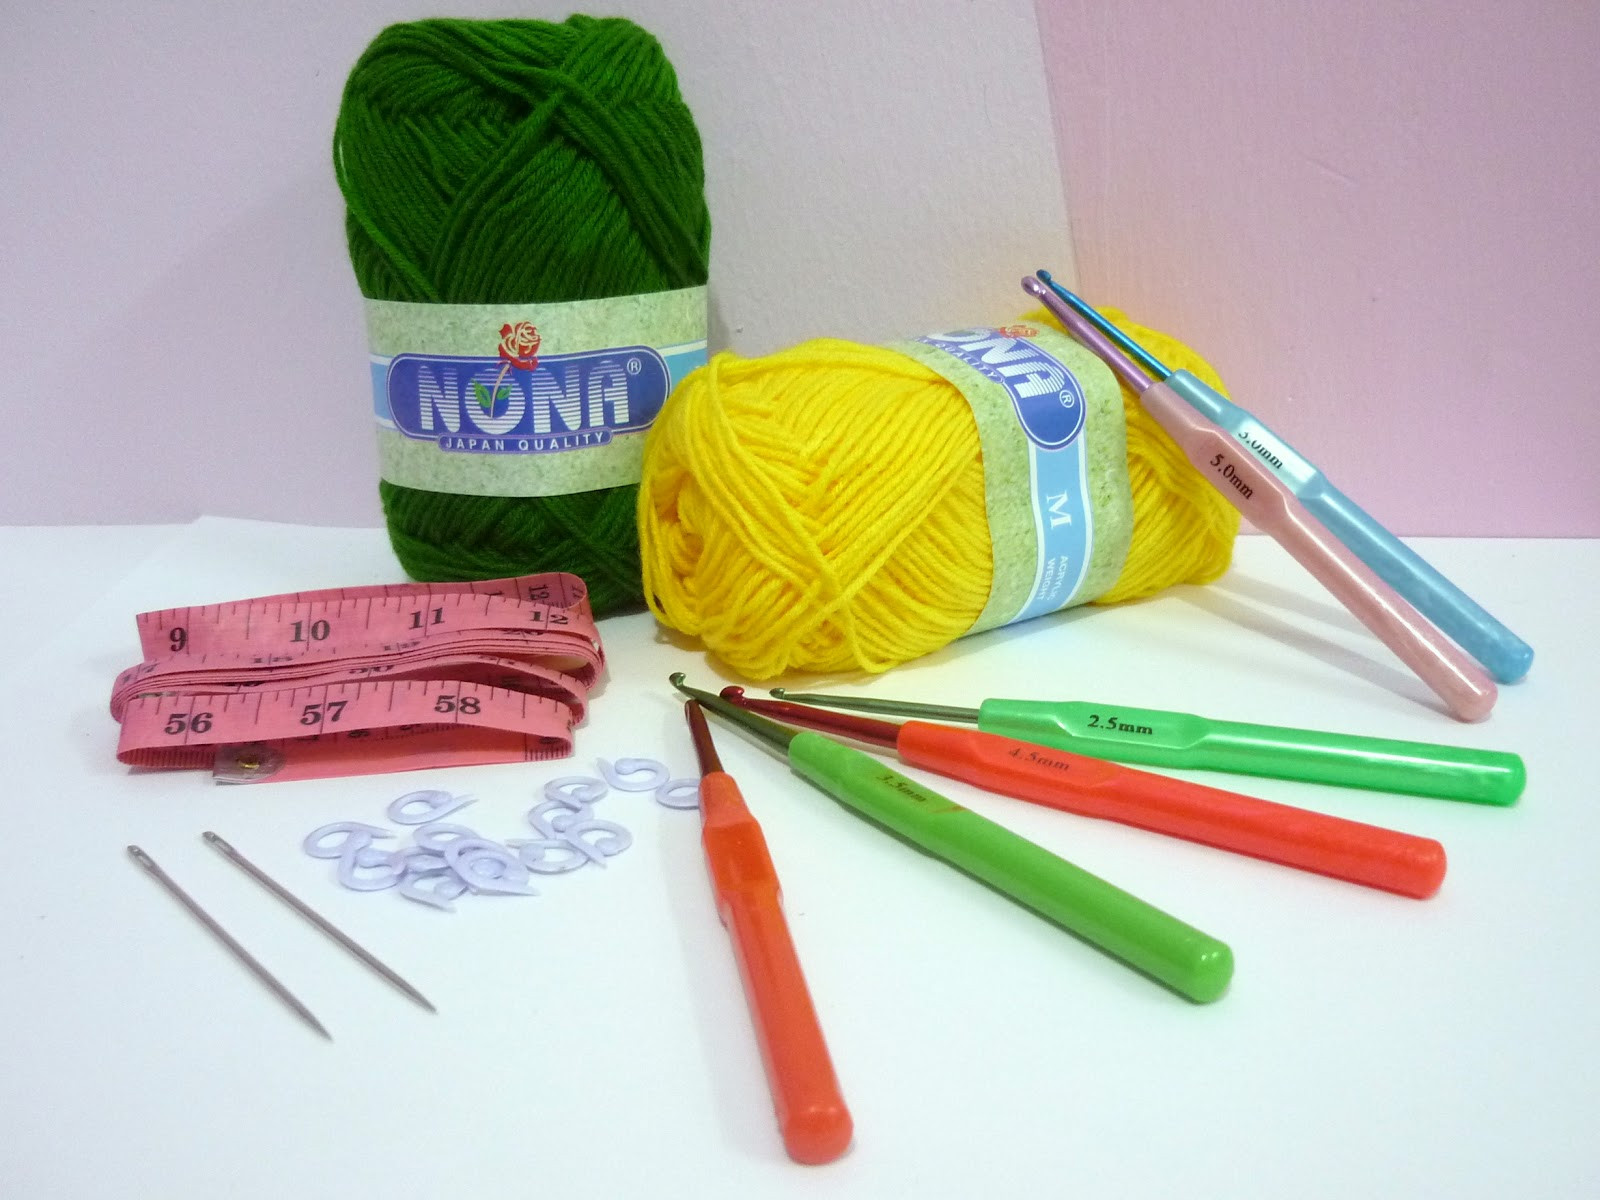 Crochet tools Fresh Fun Crochet tools 5 In 1 Crochet Kit Of Contemporary 49 Images Crochet tools